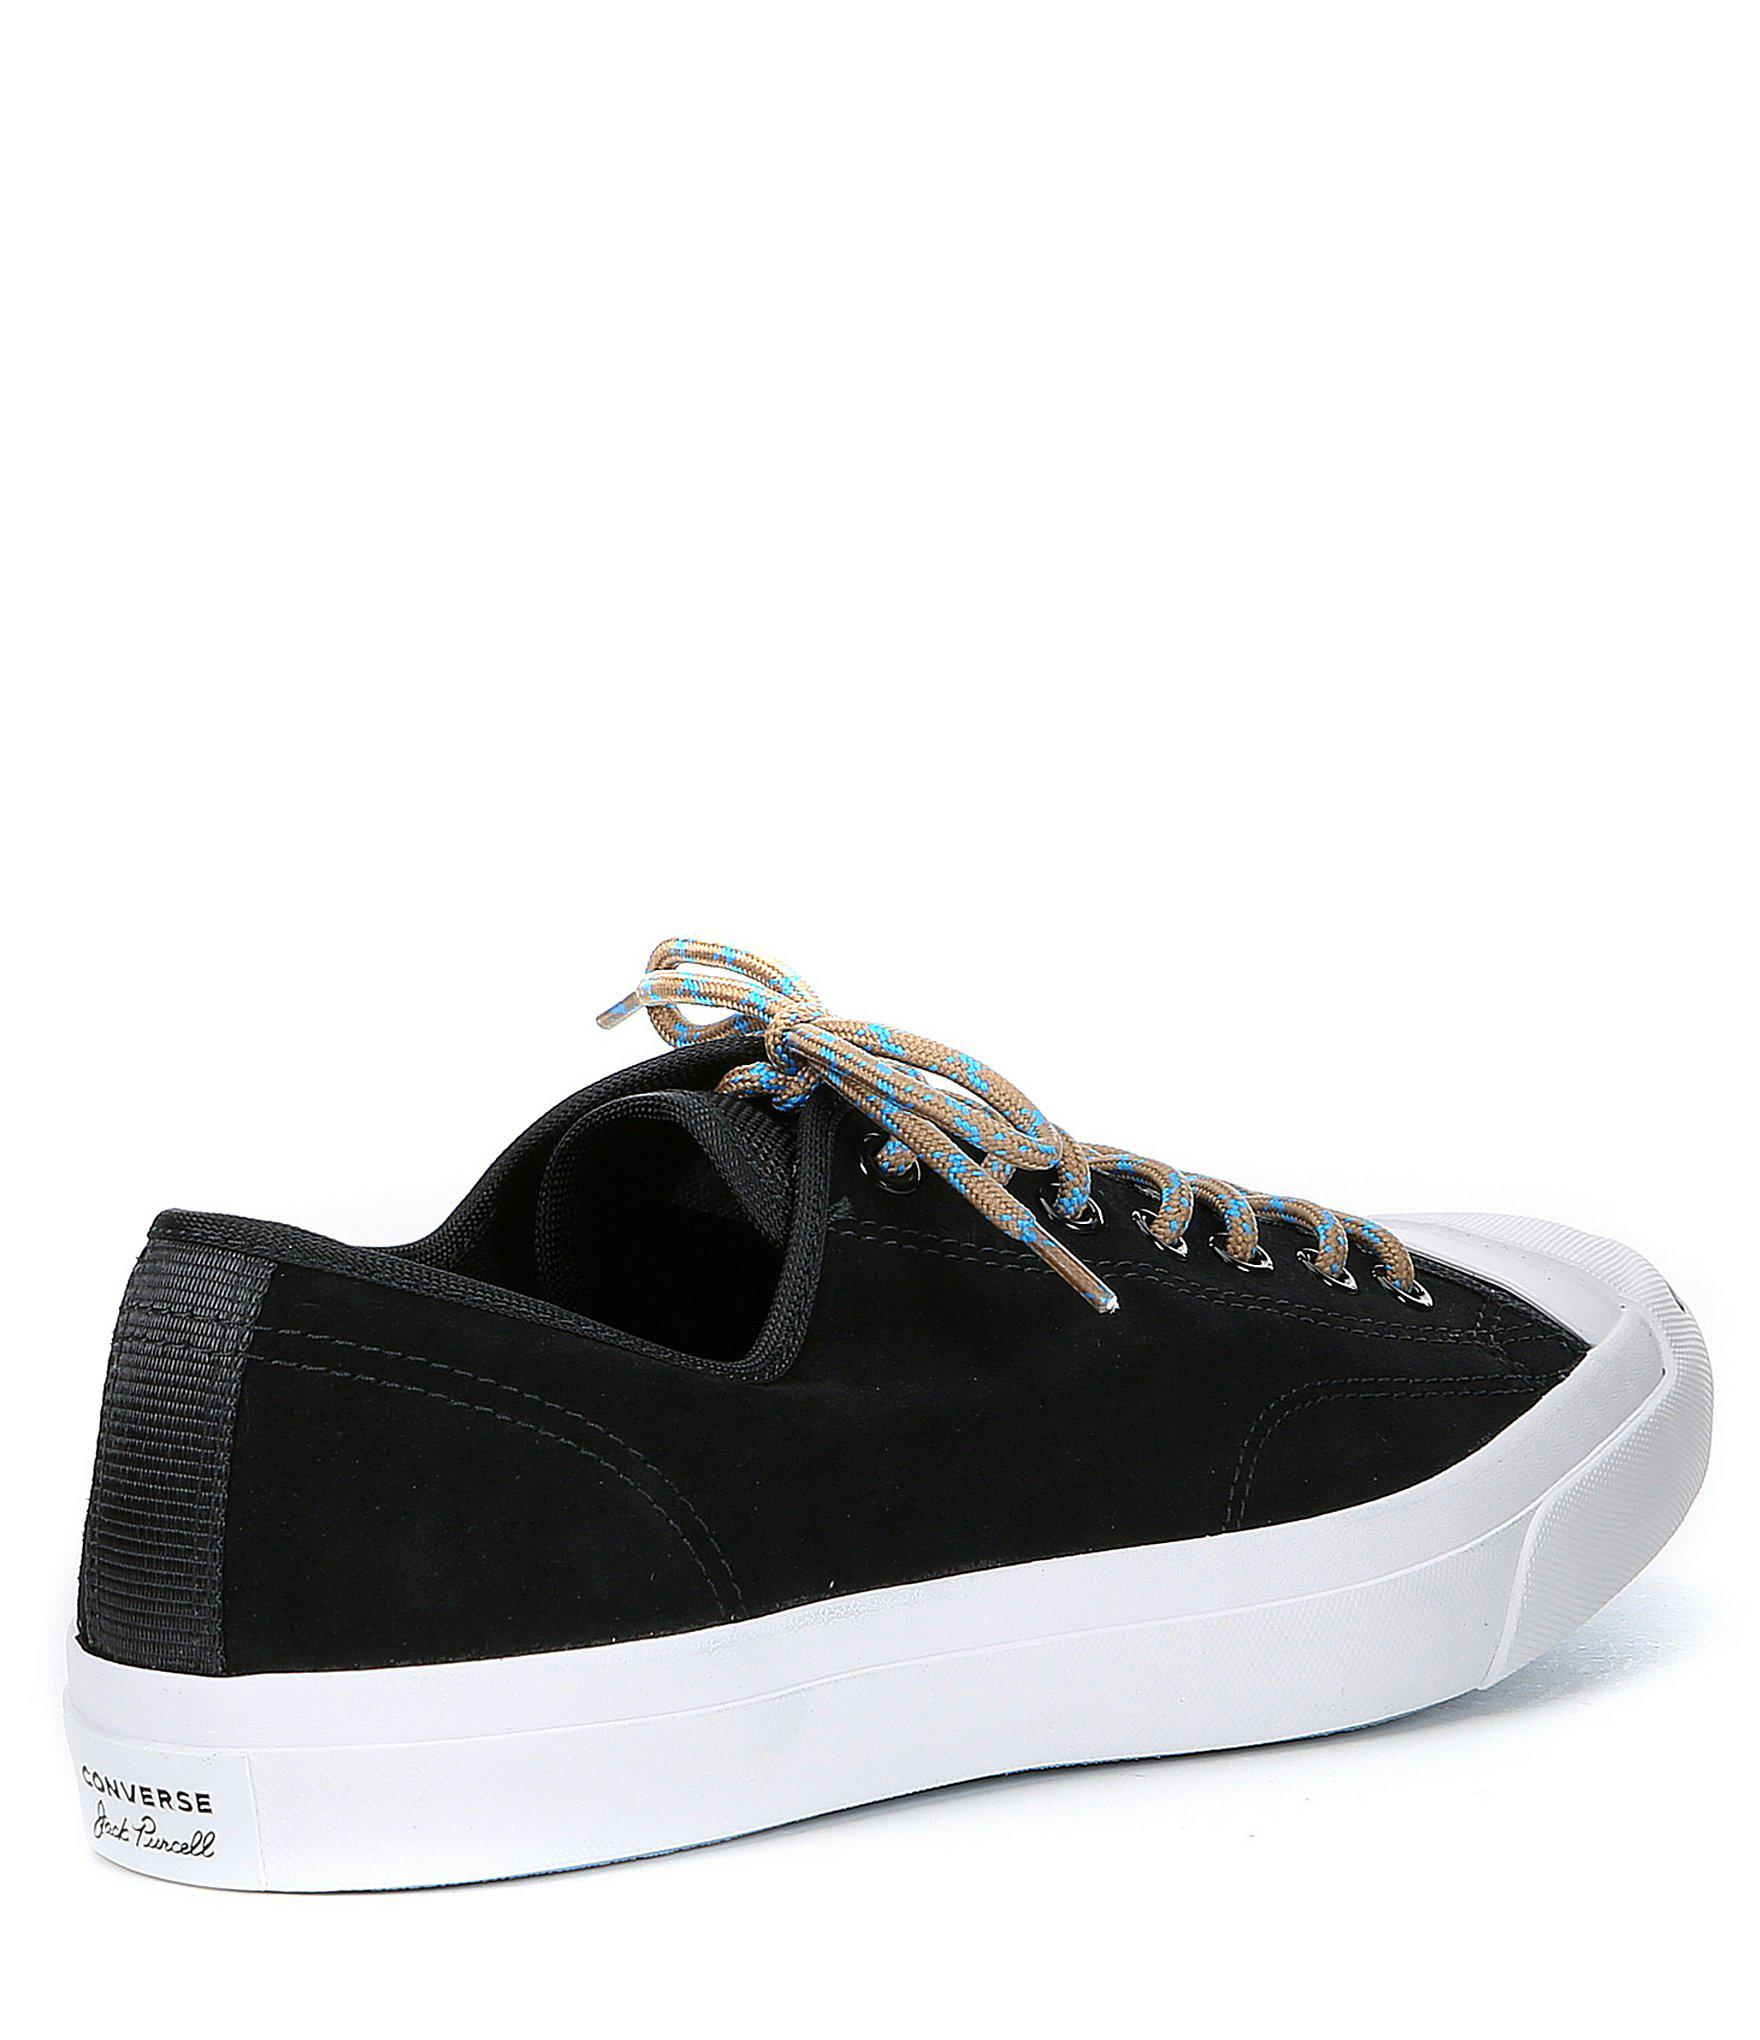 93280619fbdf Converse - Black Men s Jack Purcell Suede Sneaker for Men - Lyst. View  fullscreen